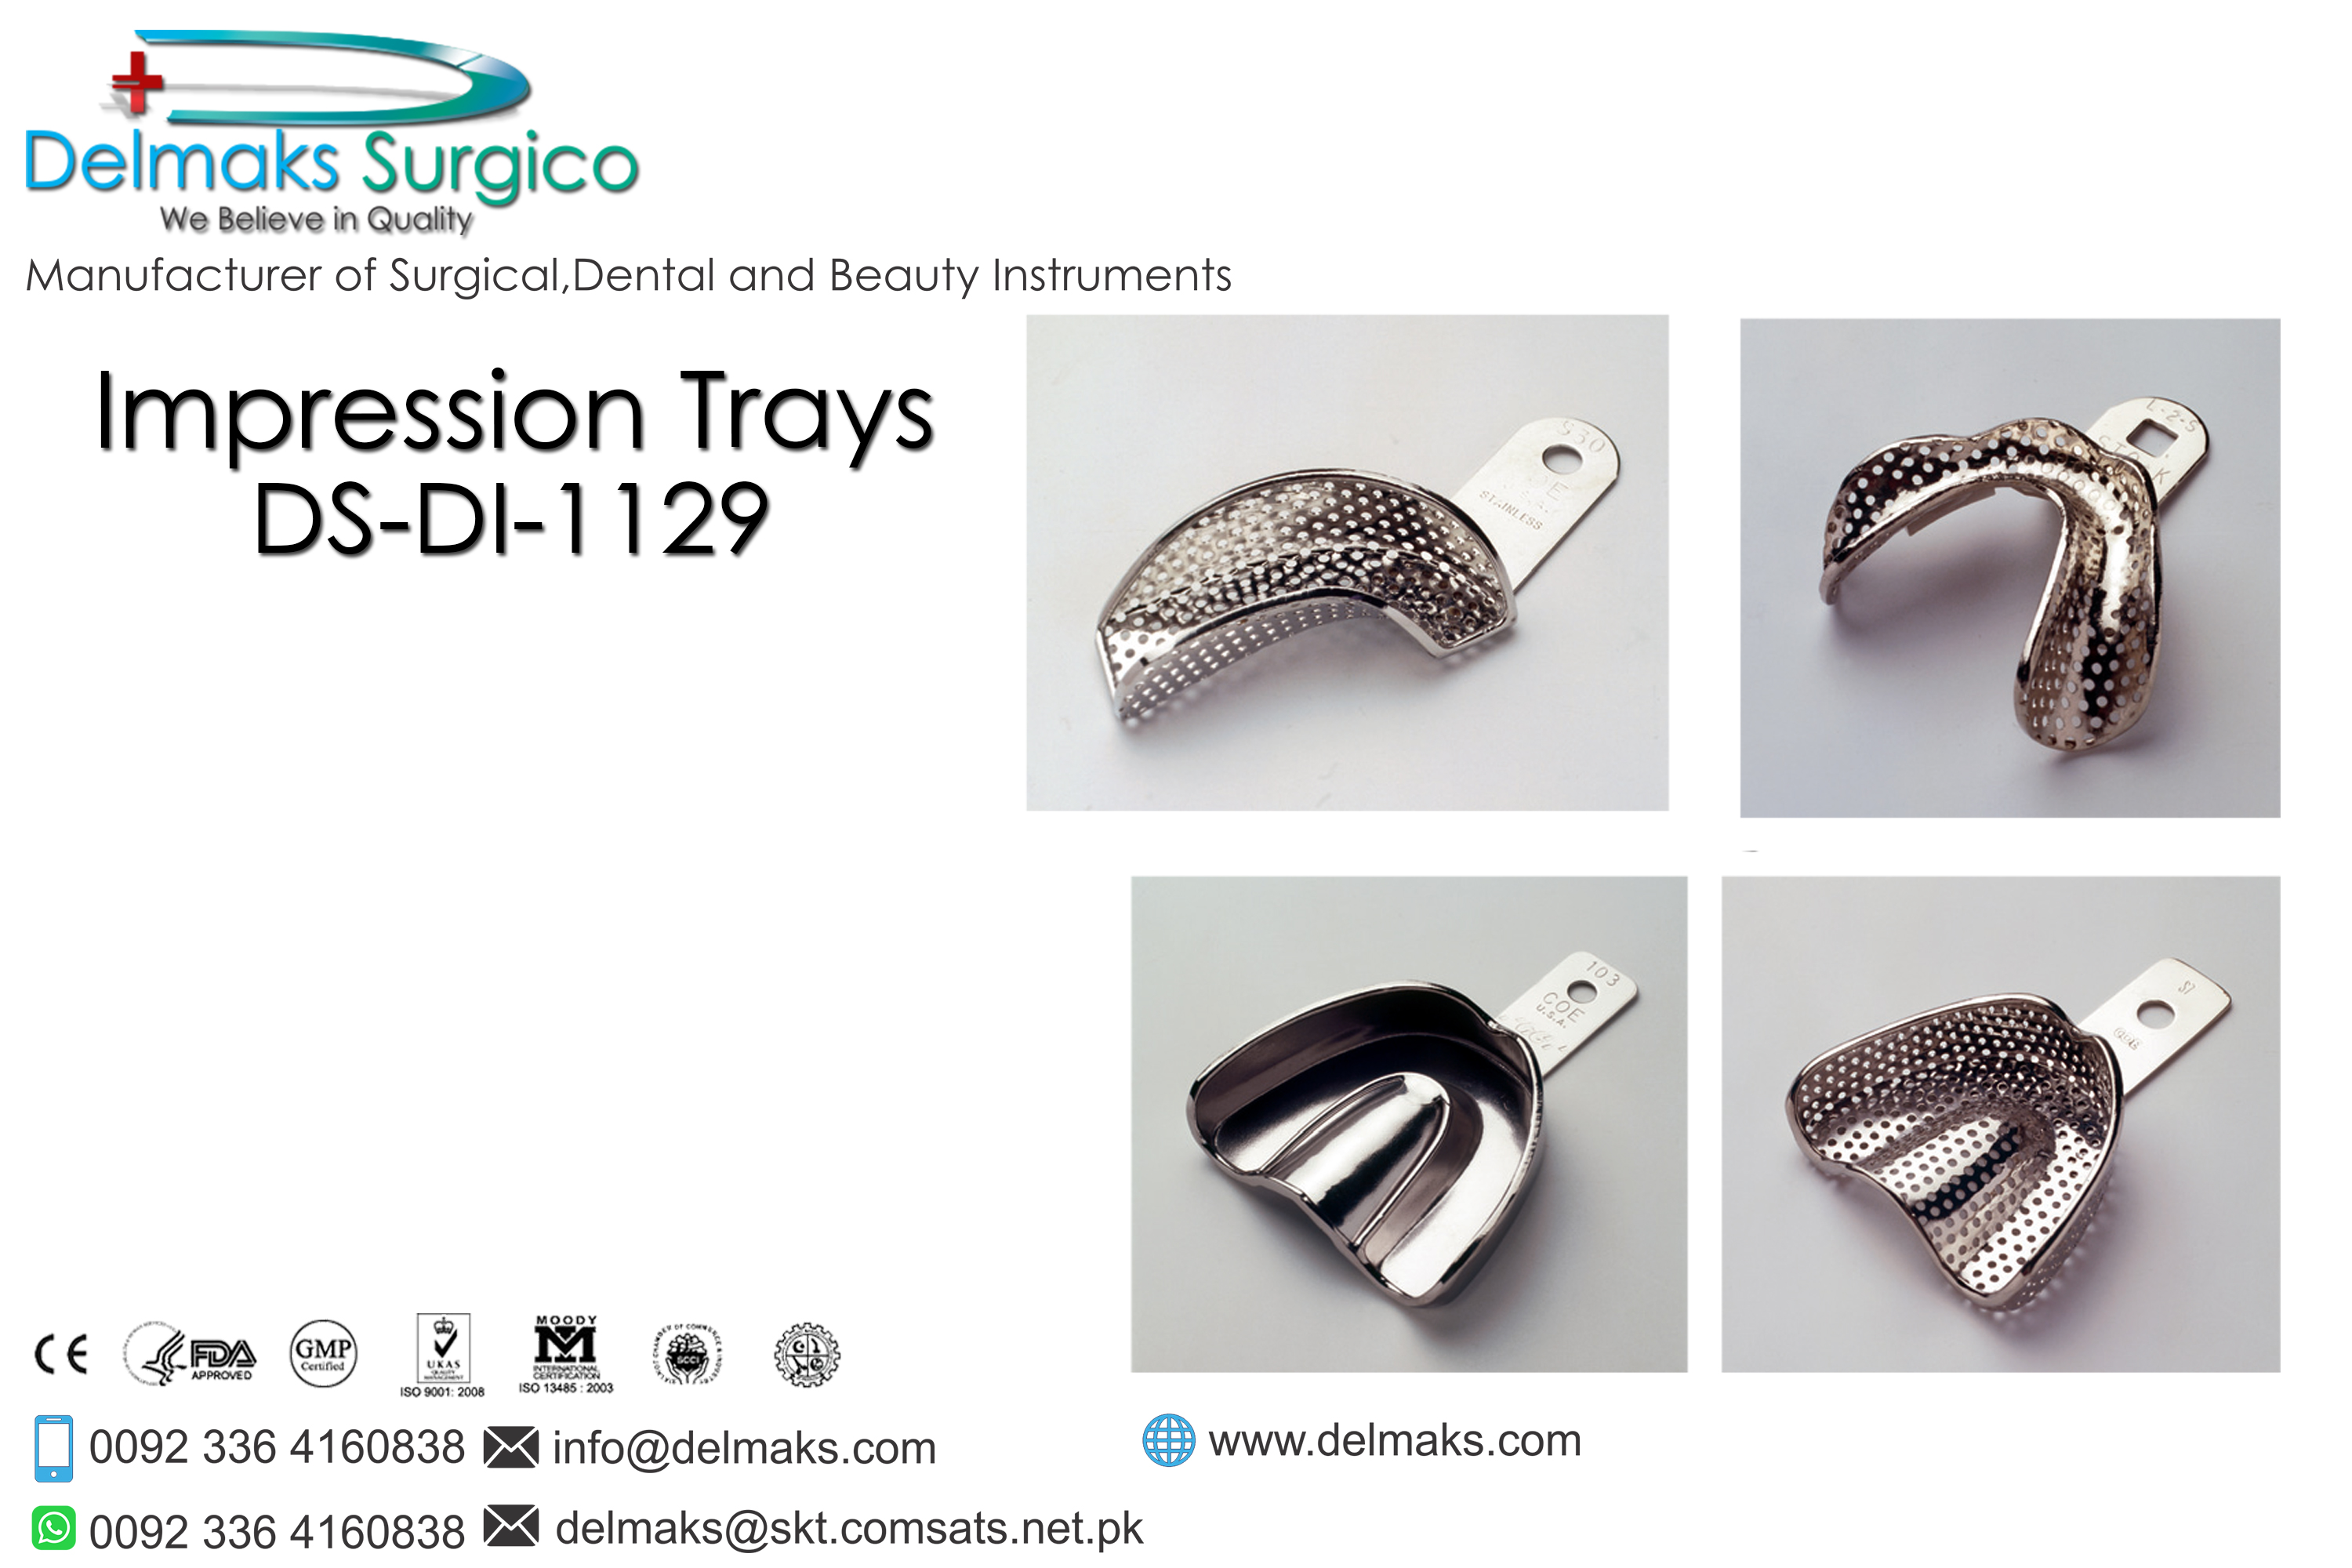 Impression Trays-Impression Instruments And Equipments-Dental Instruments-Delmaks Surgico